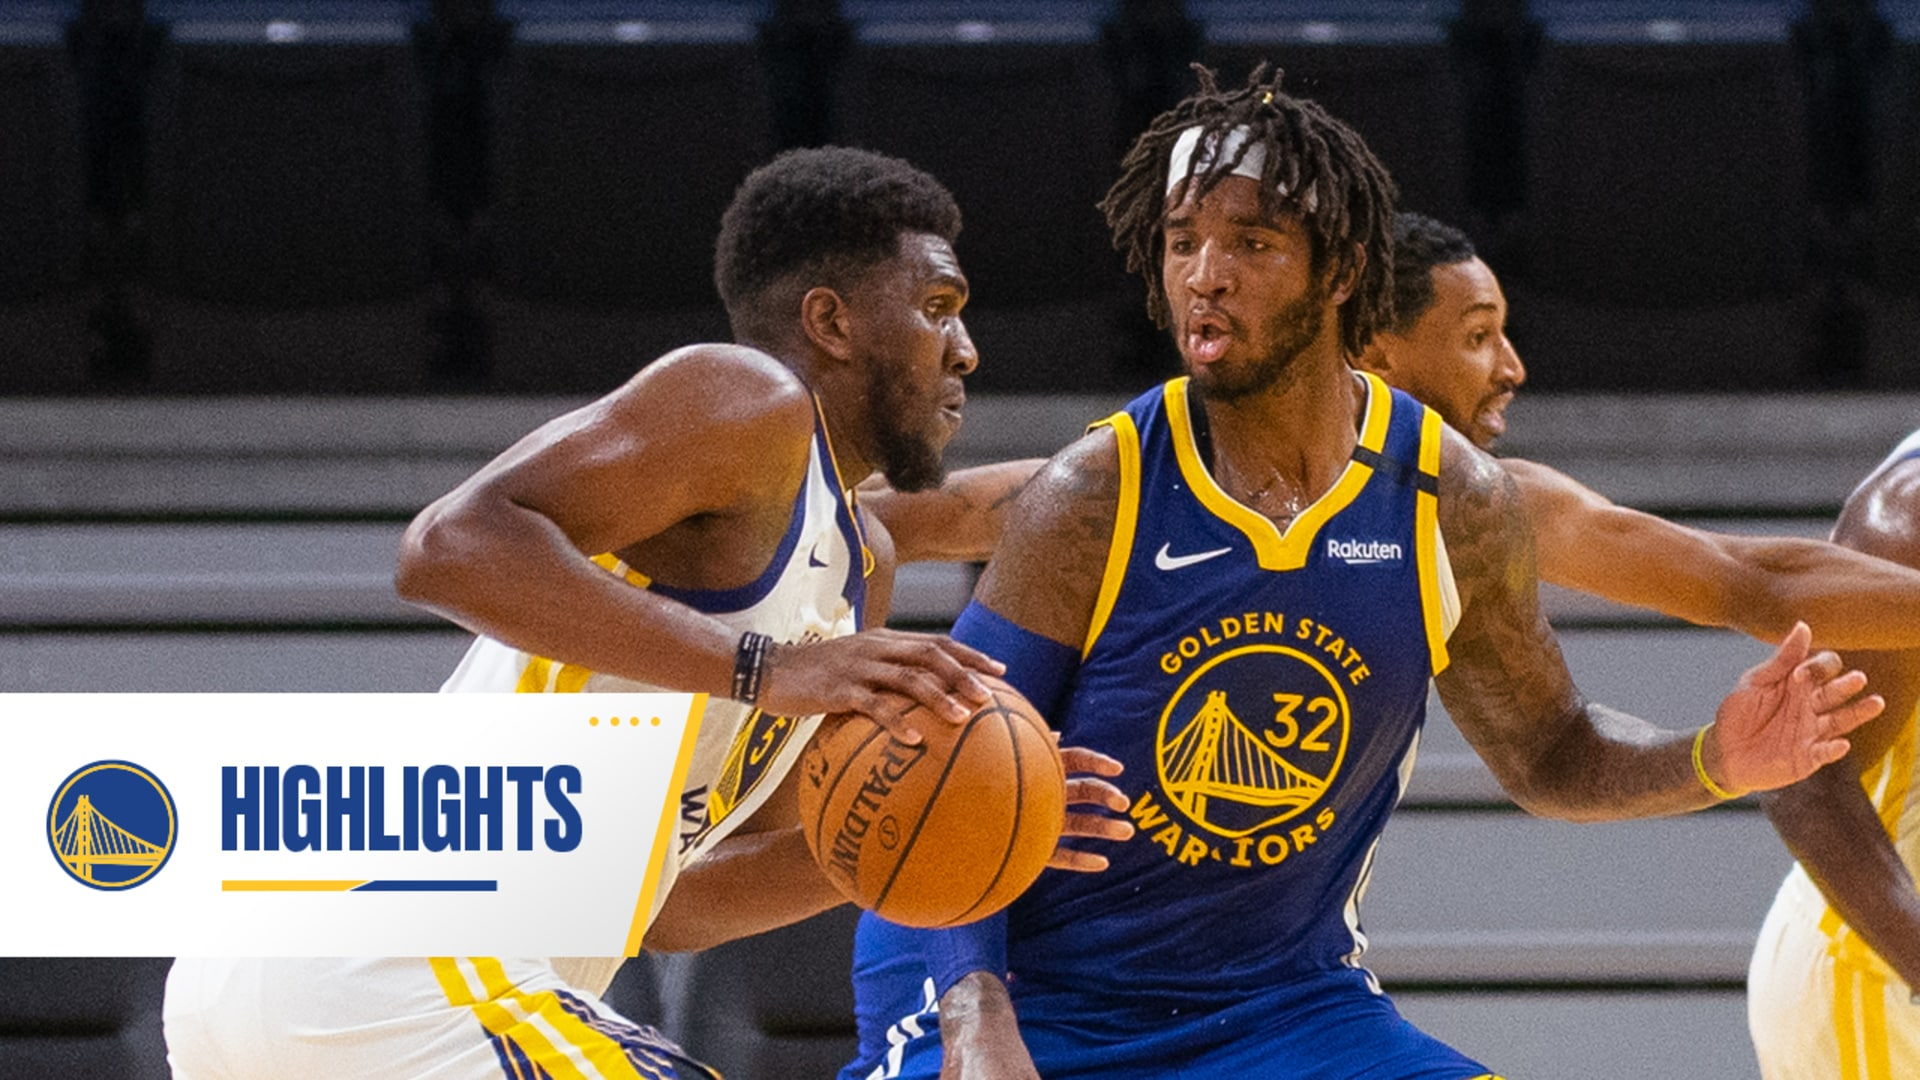 Warriors Minicamp Scrimmage: Fourth Quarter Highlights